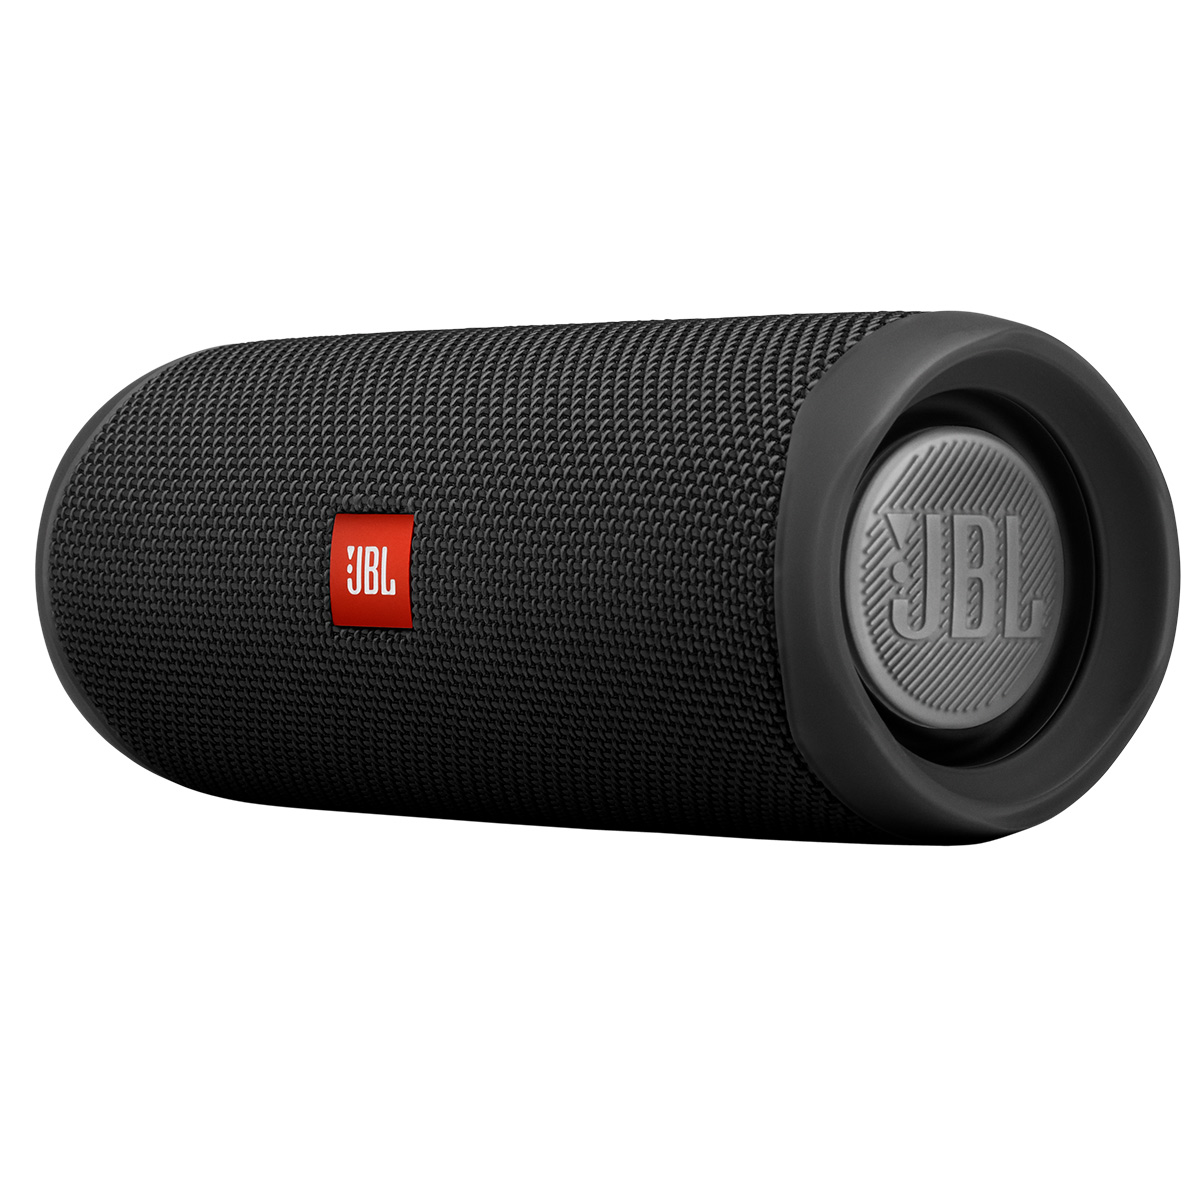 JBL-Flip-5-Portable-Waterproof-Bluetooth-Speaker thumbnail 7